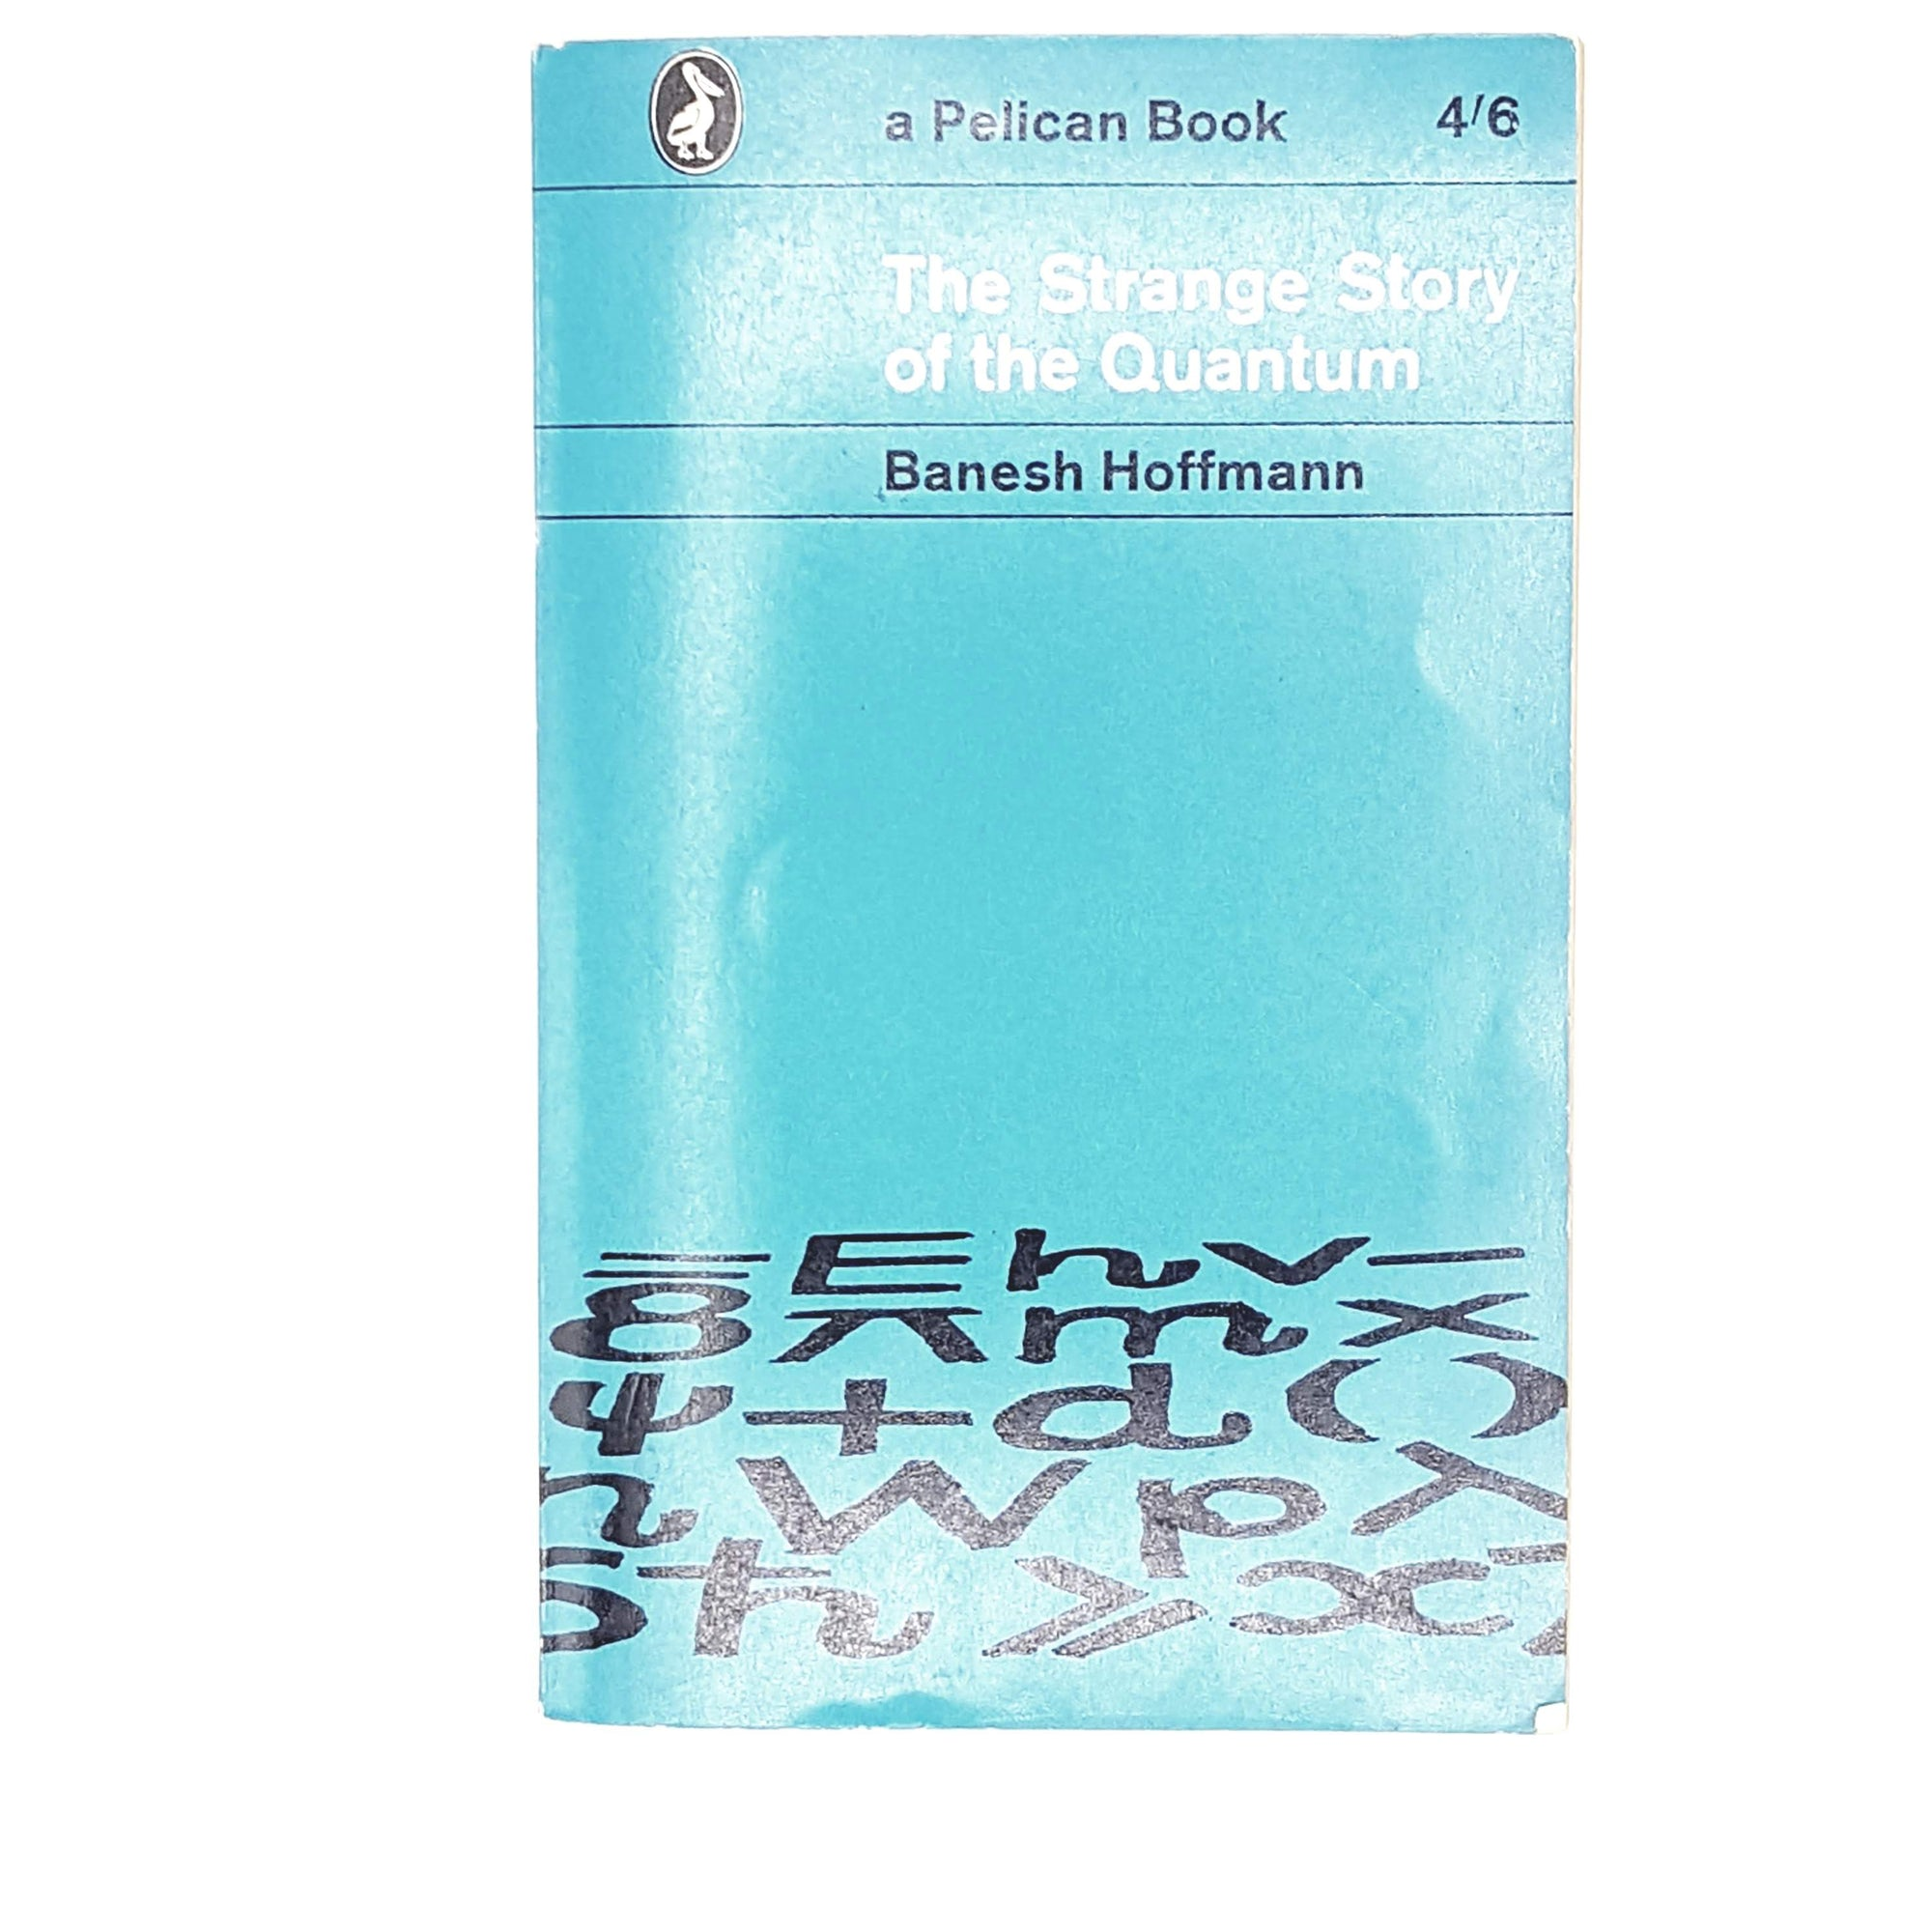 The Strange Story of the Quantum by Banesh Hoffman 1963